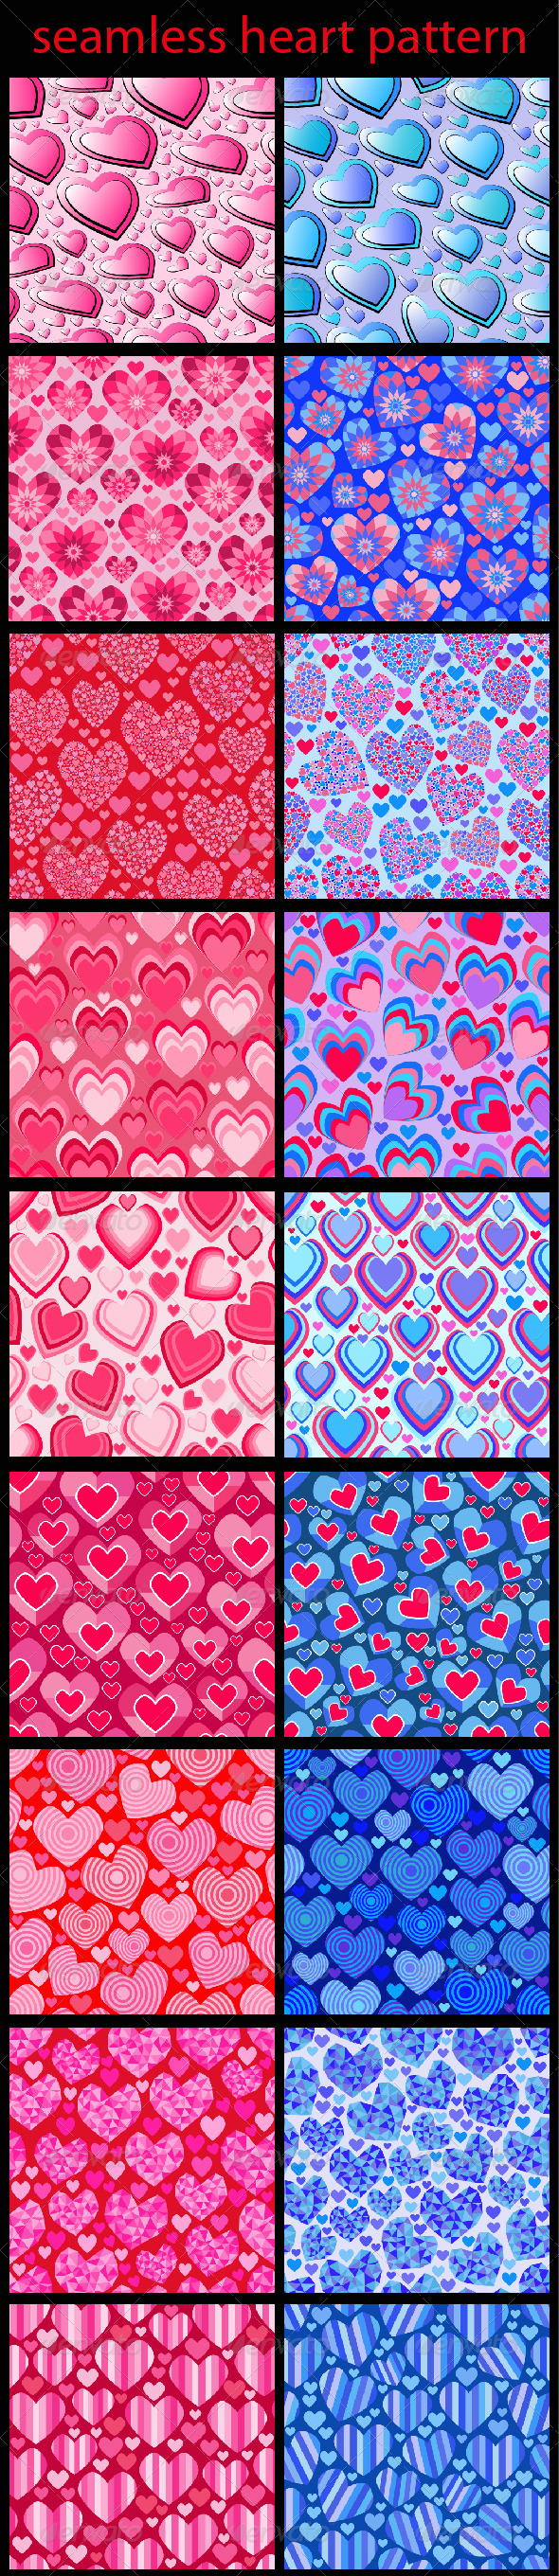 GraphicRiver Seamless Heart Patterns 6634310